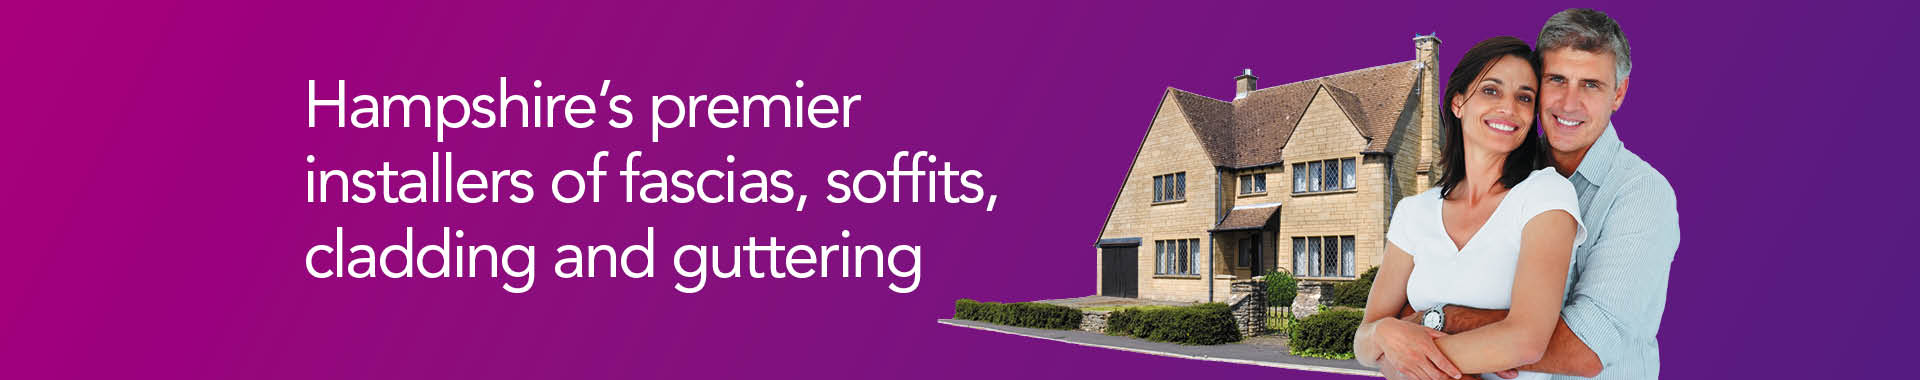 Hampshire's premier installers of fascias, soffits, cladding and guttering